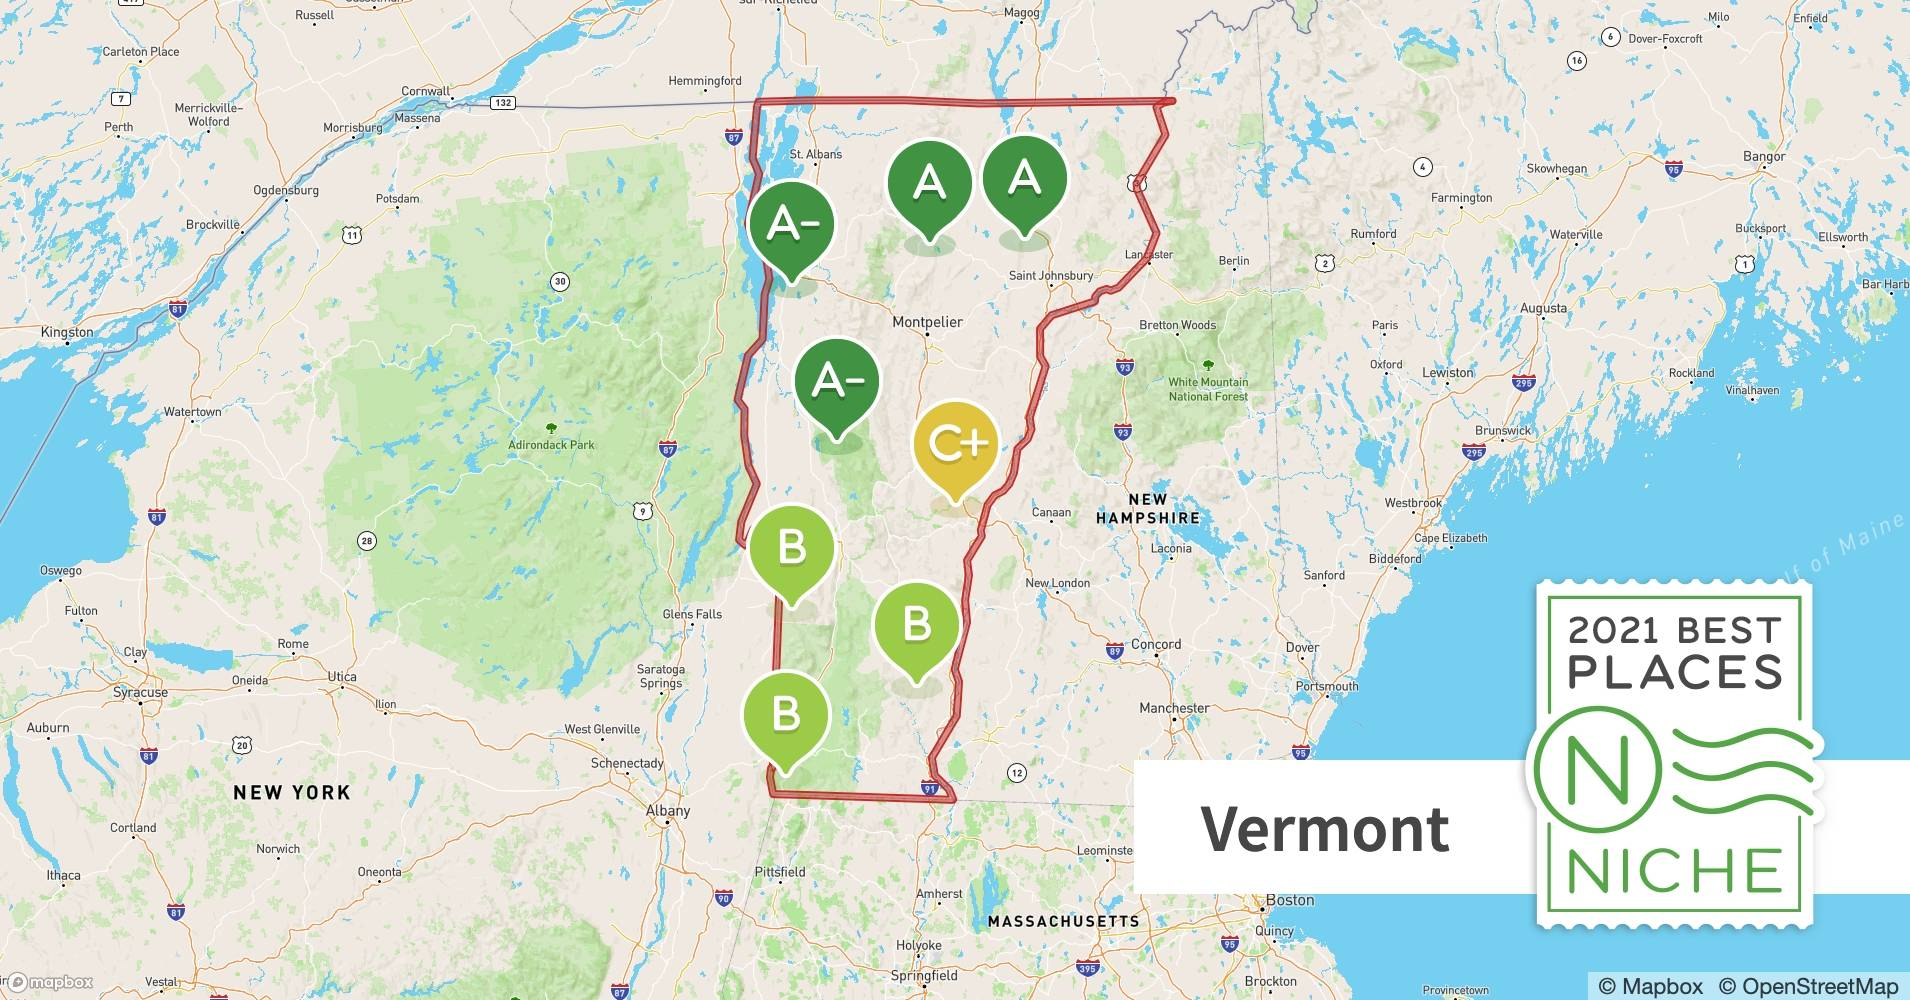 2021 Best Places To Live In Vermont Niche